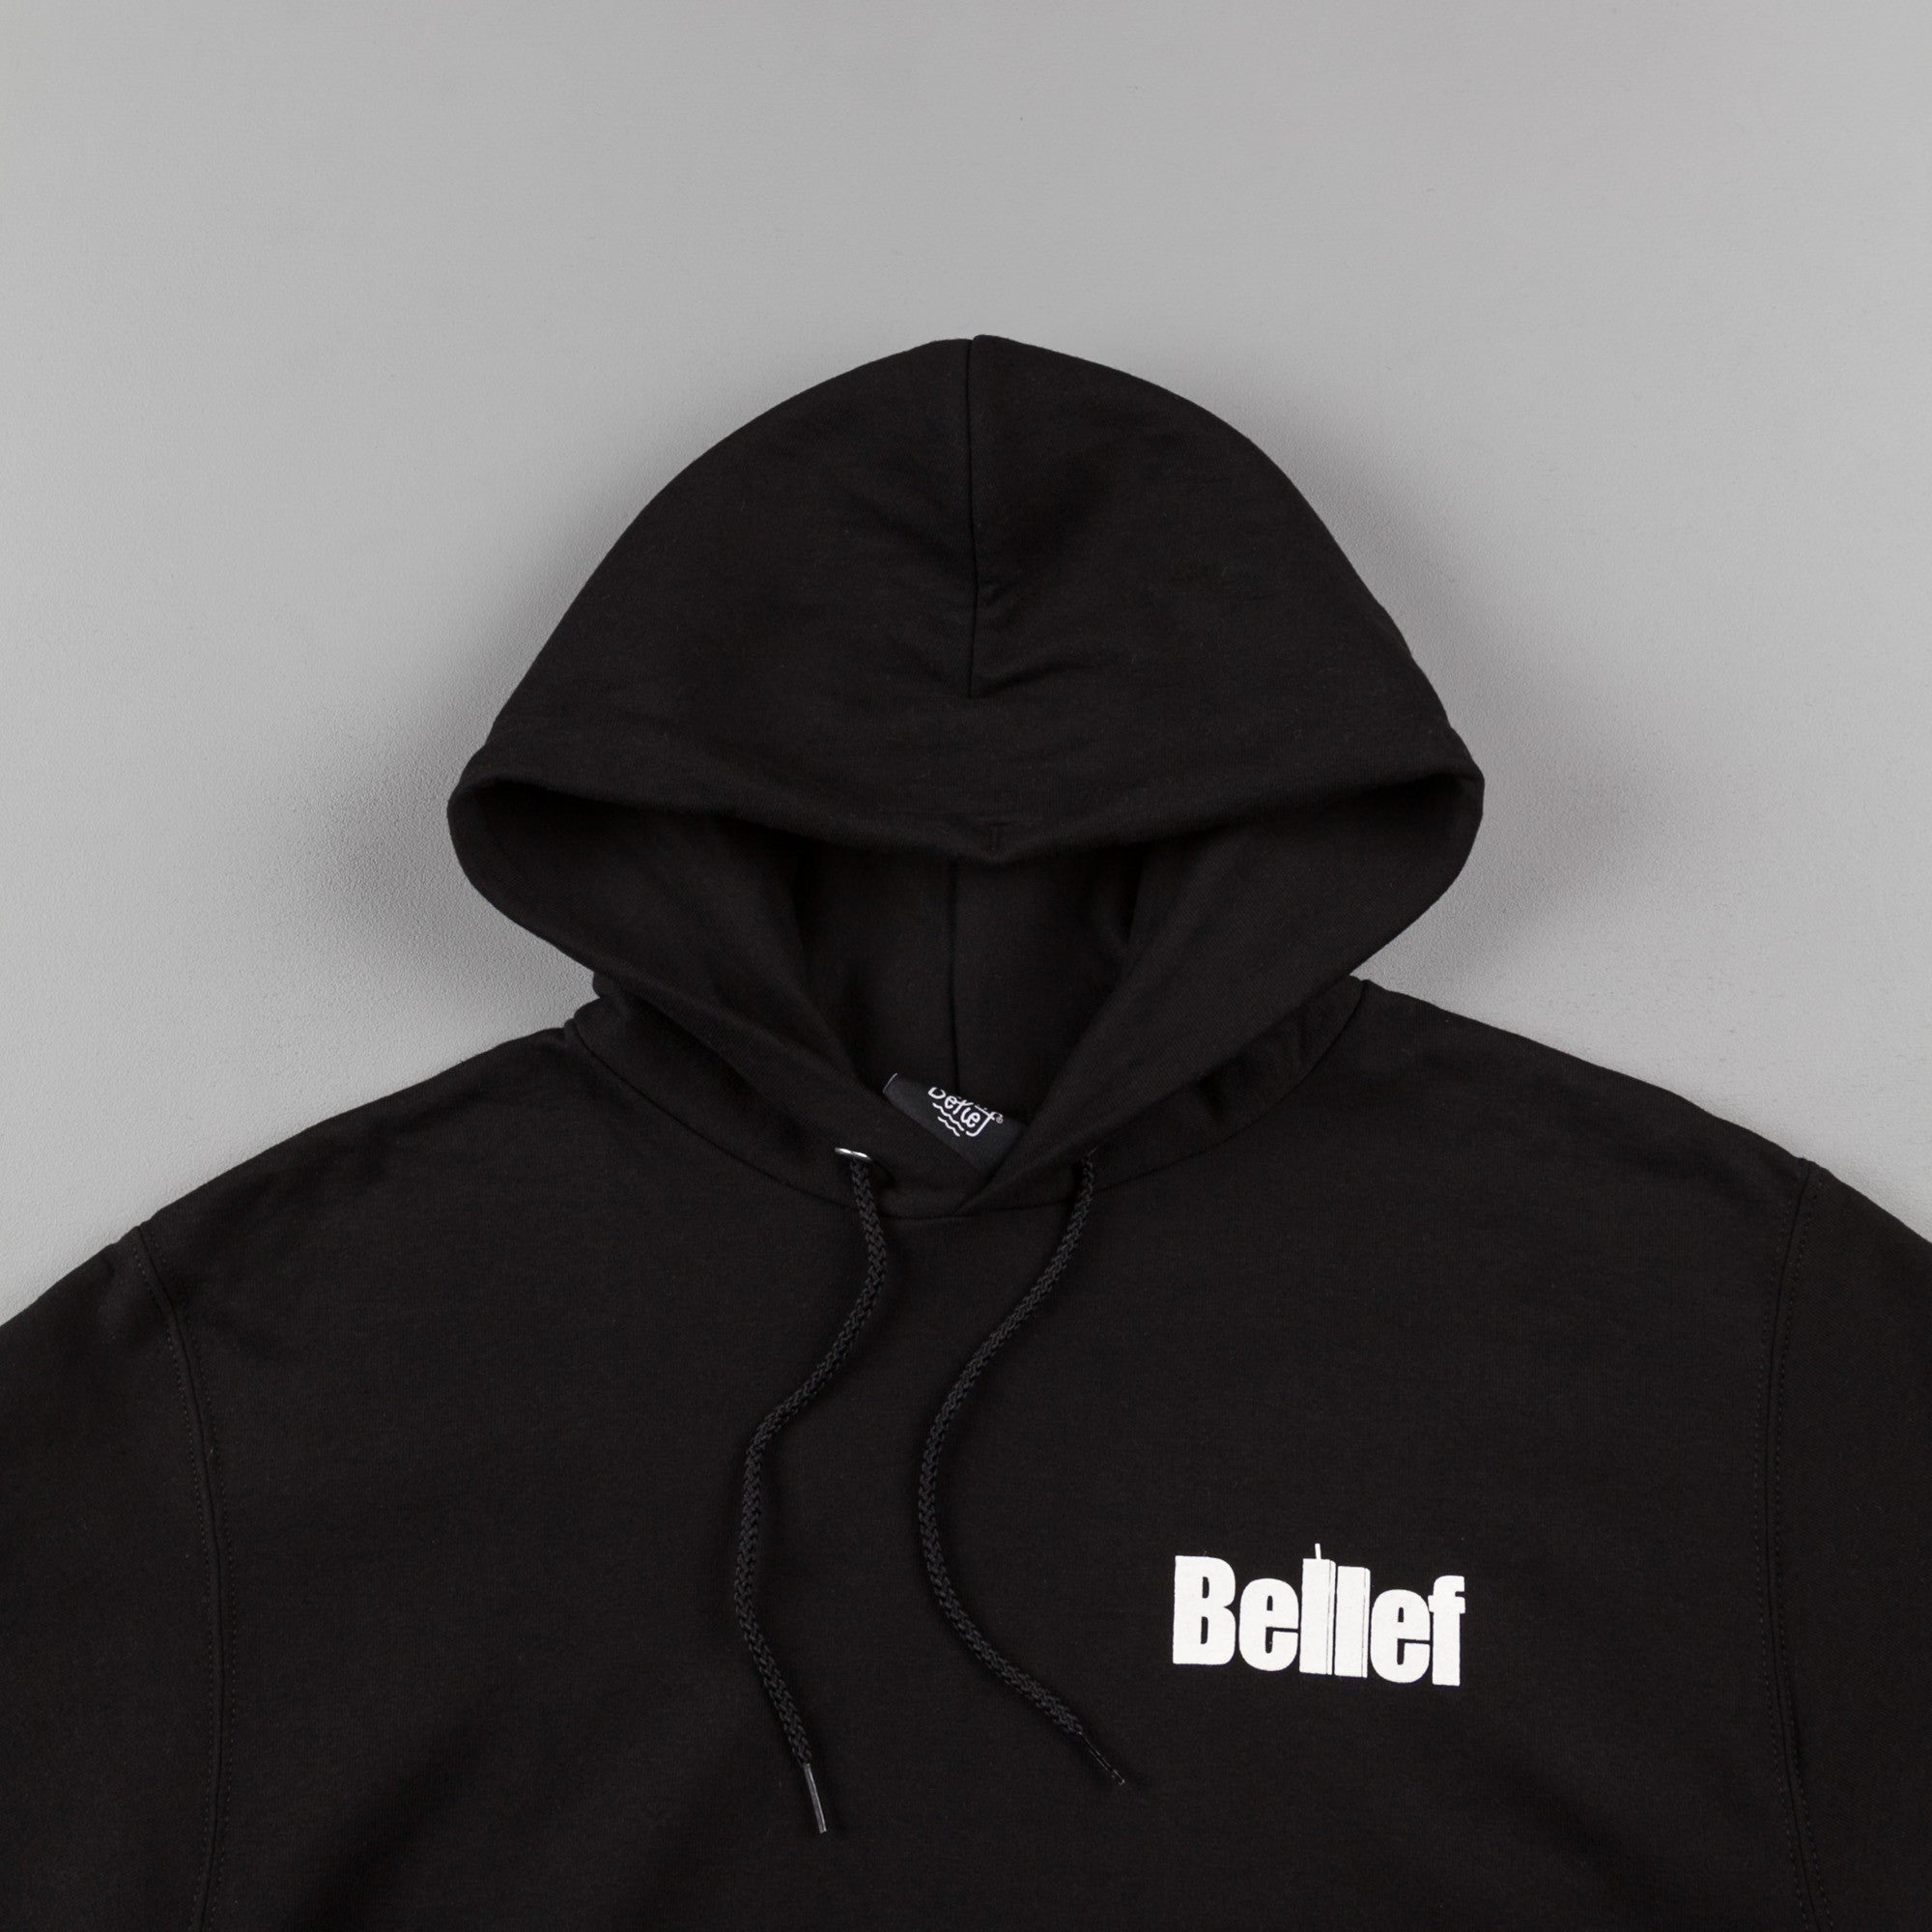 Belief World Trade Champion Hooded Sweatshirt - Black